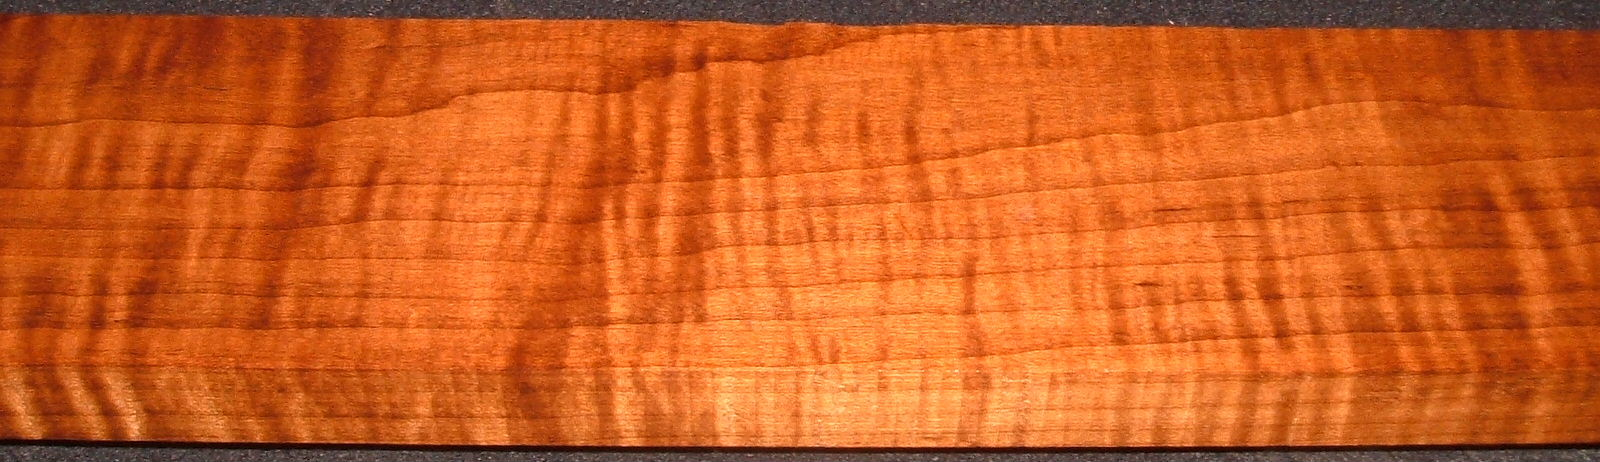 RHM2010-324,  1x4x47, Roasted Torrefied Curly, Tiger Maple, Roasted Hard Maple